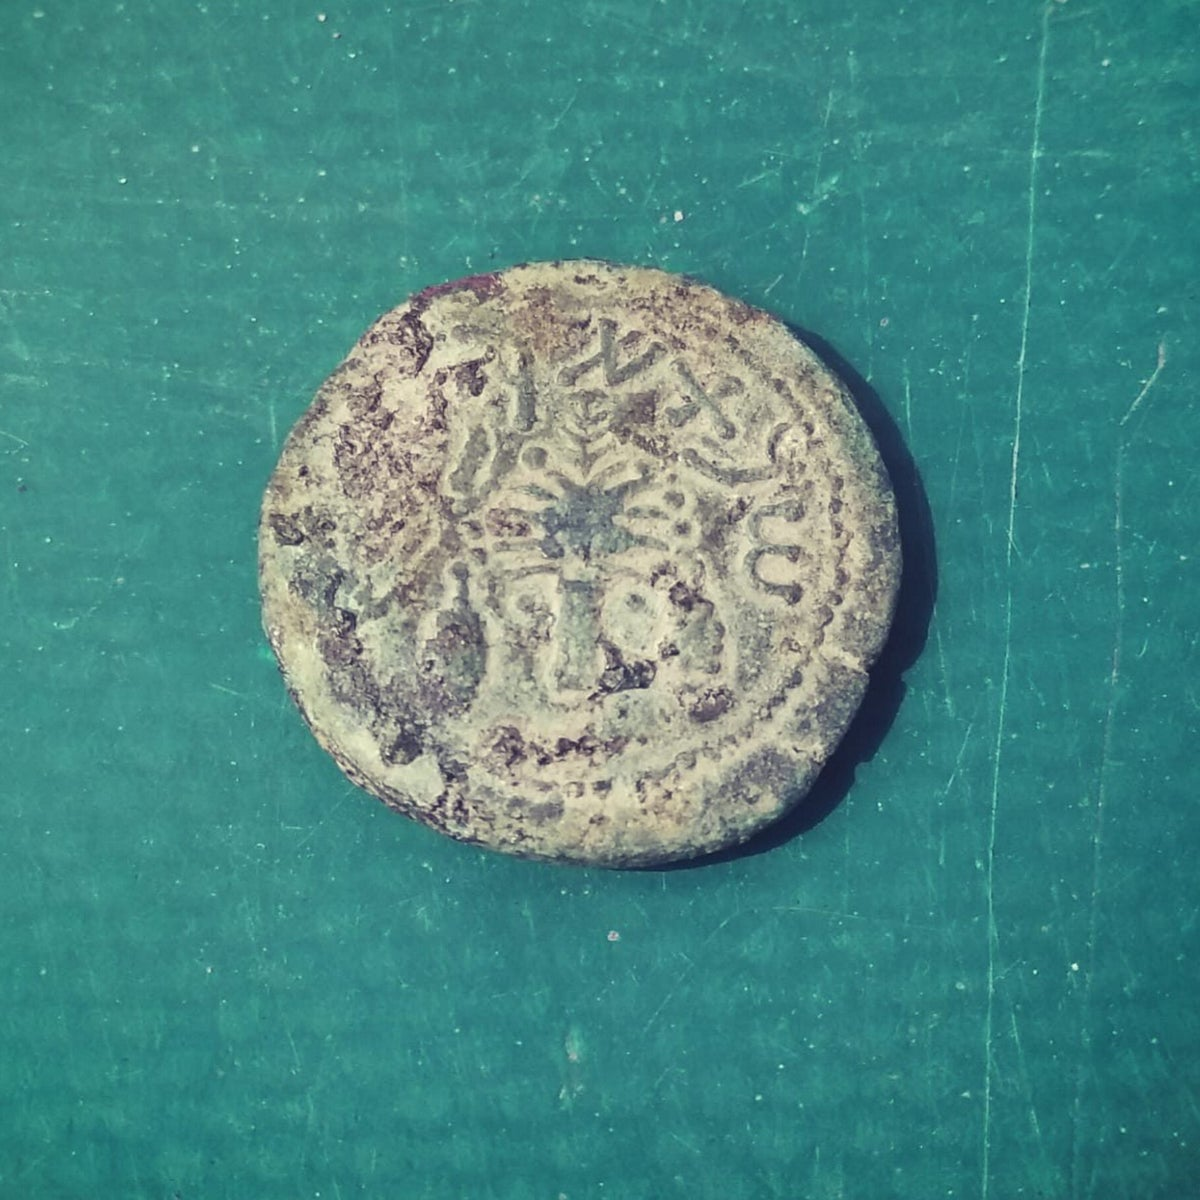 Coin minted in the year 69, found in ancient Jerusalem drainage tunnel